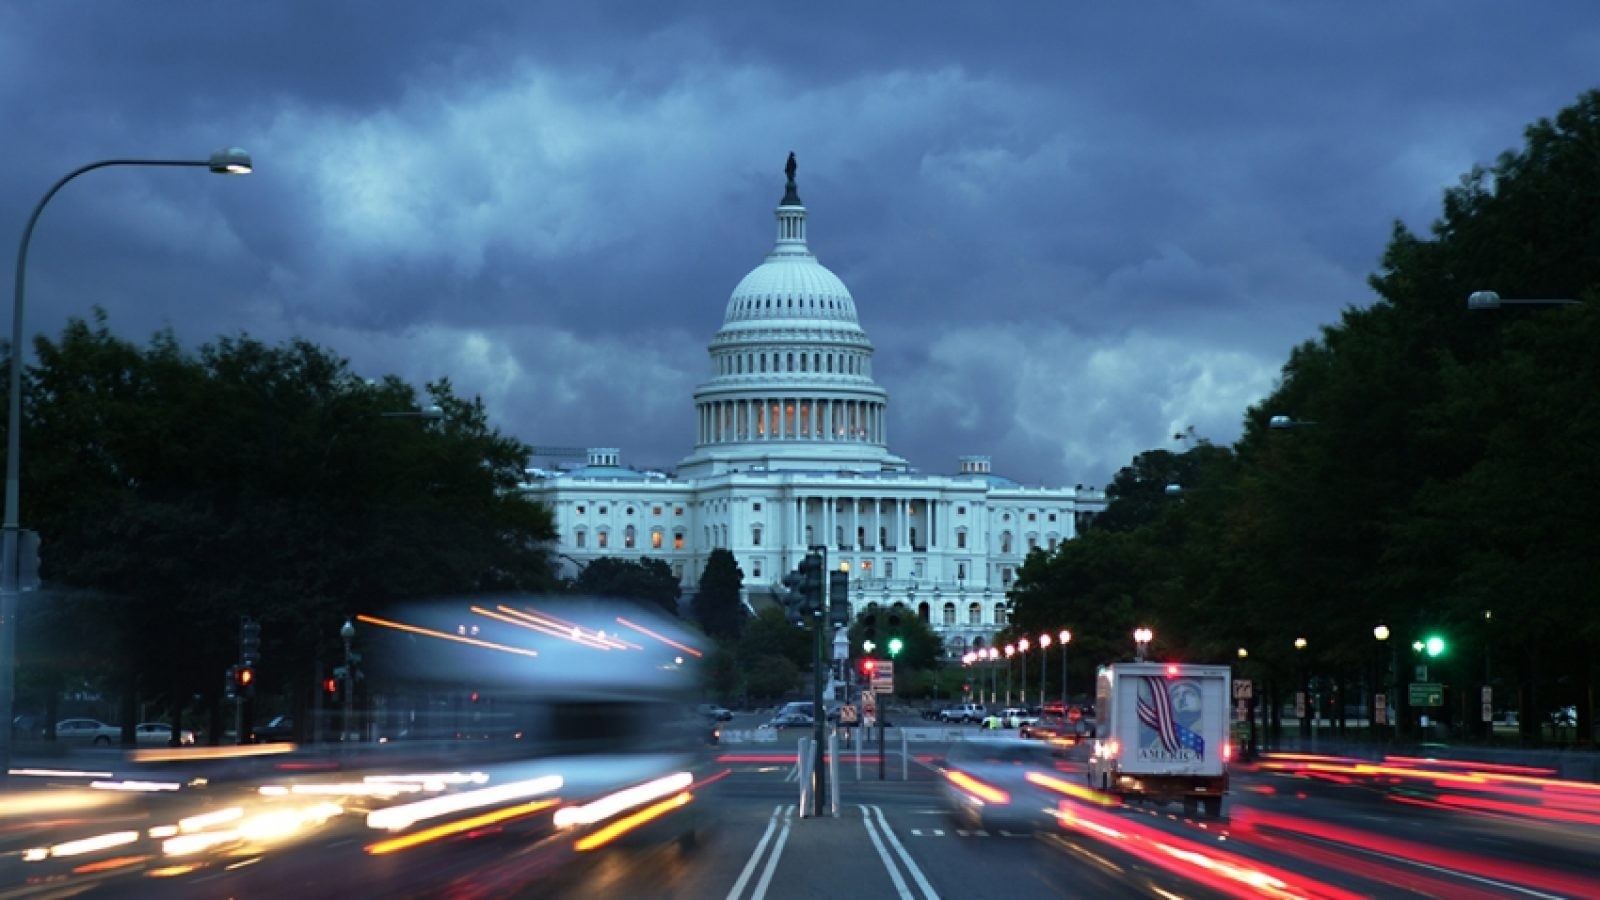 Cars drive in front of the U.S. Capitol Building on a dark stormy evening